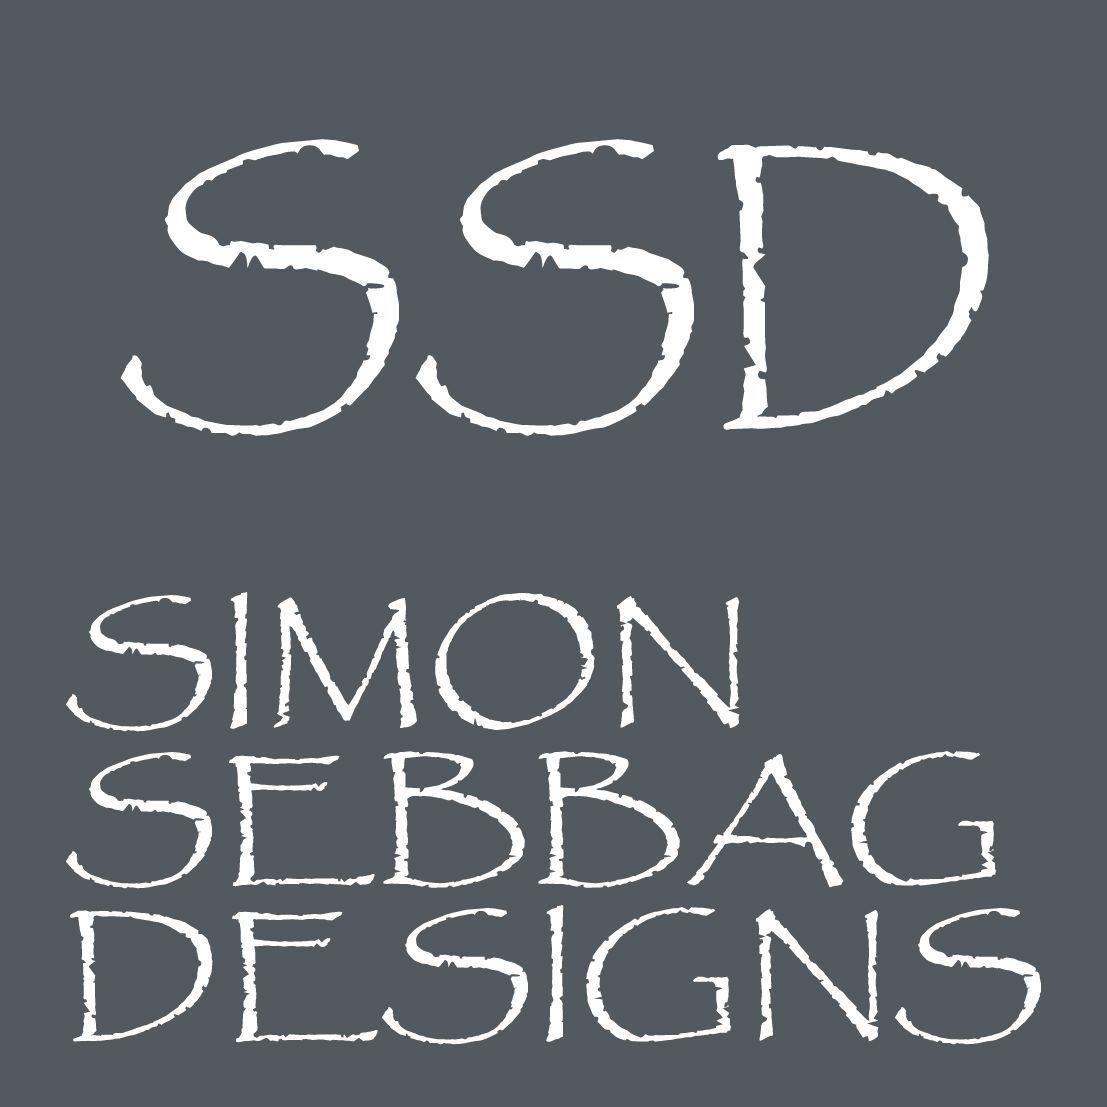 Simon Sebbag Designs